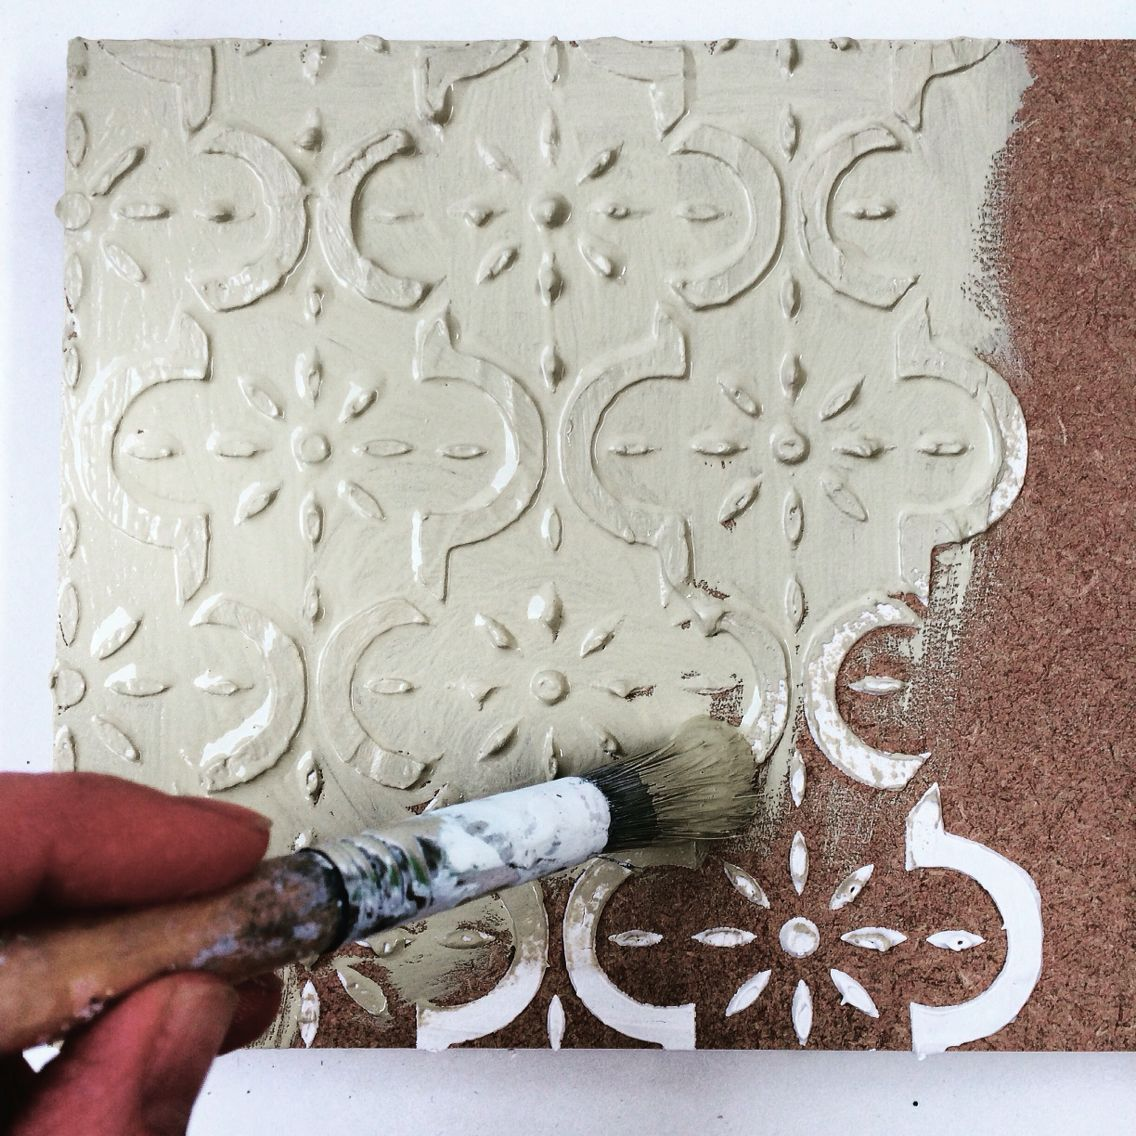 Creating a 3D effect with Stencil Paste and the Medina Stencil #stencil #stencilpaste #paintedfurniture